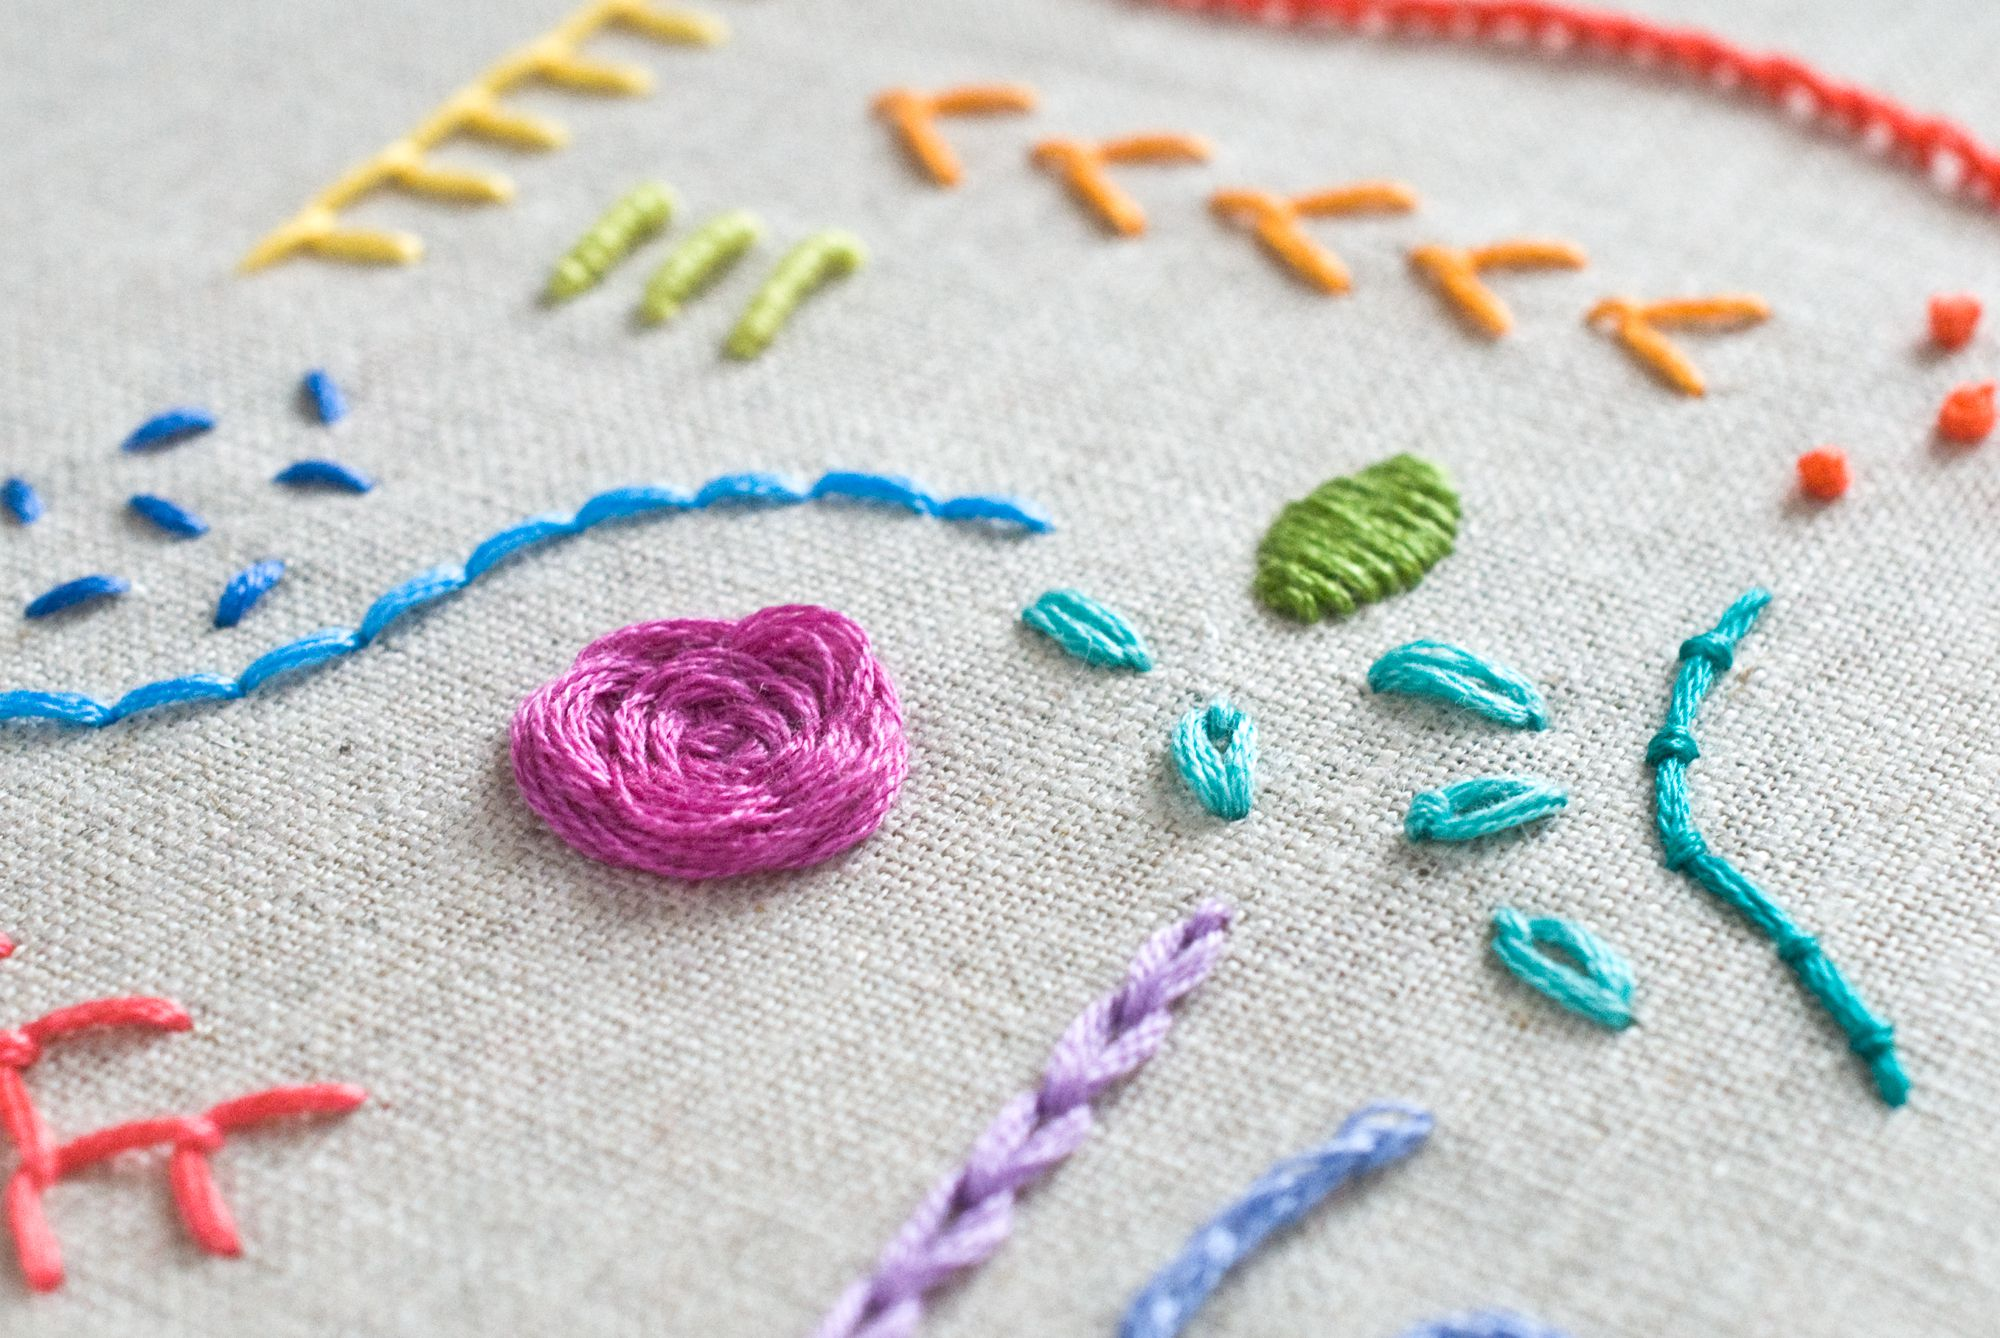 Design Your Own Embroidery Sampler